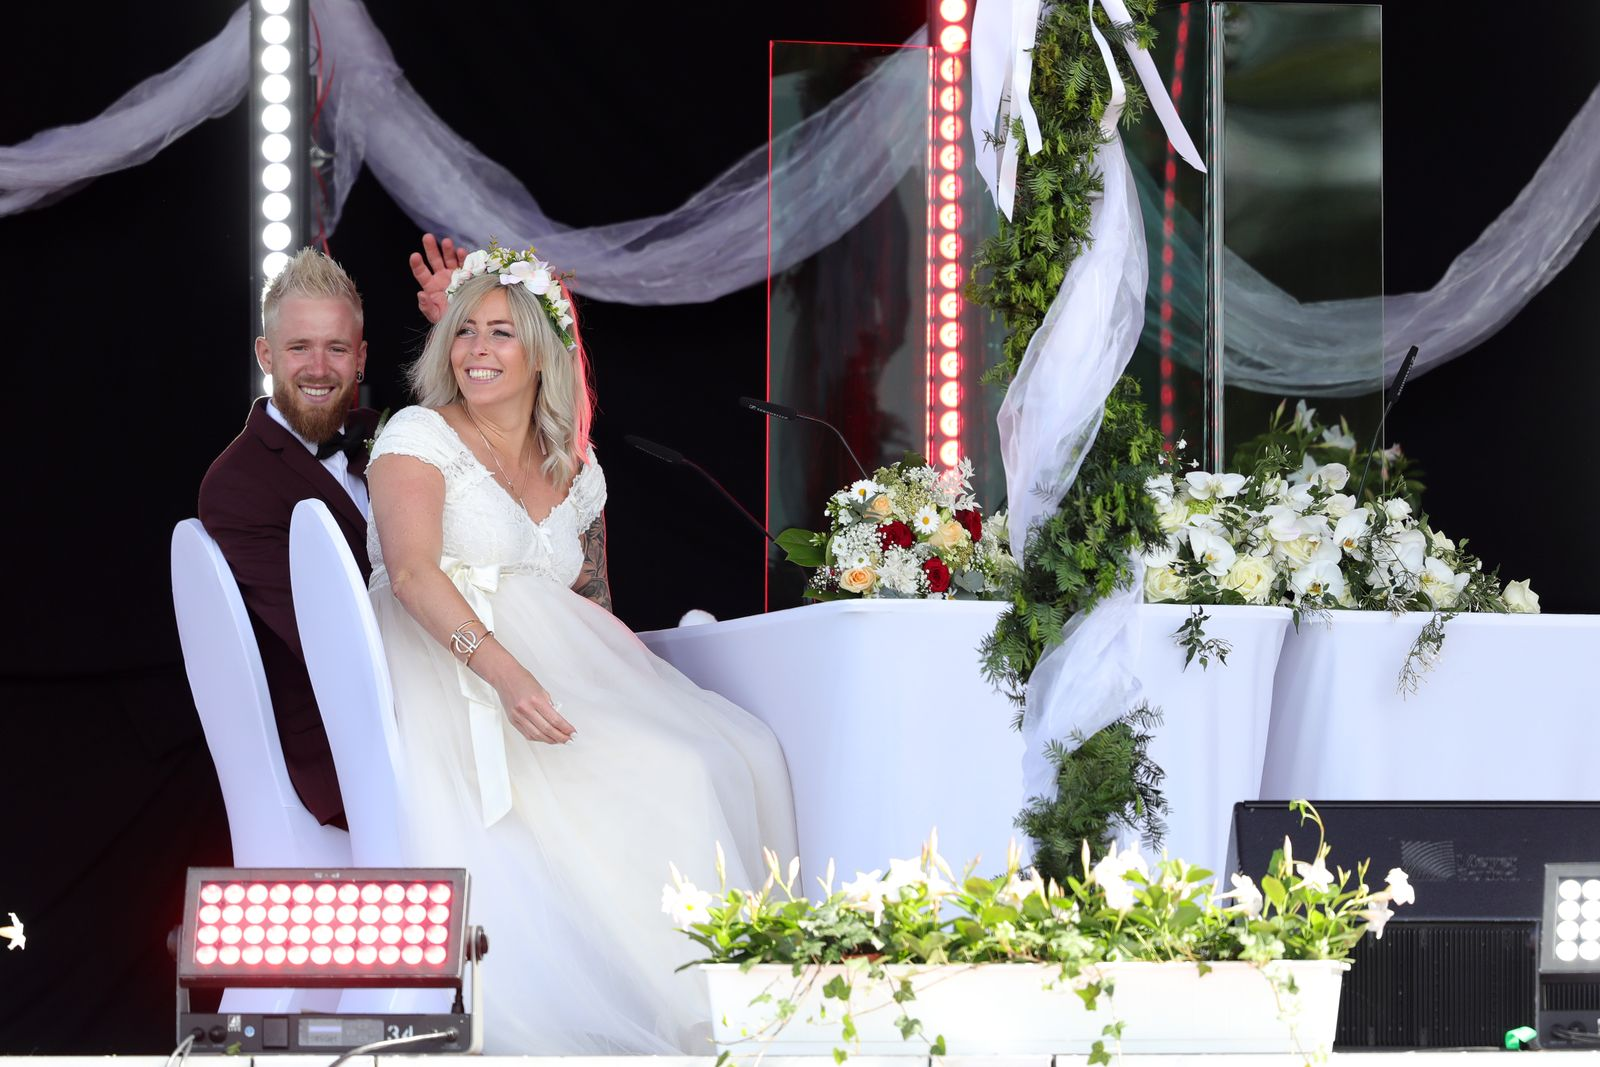 Couples Marry At Drive-In Cinema During The Coronavirus Crisis